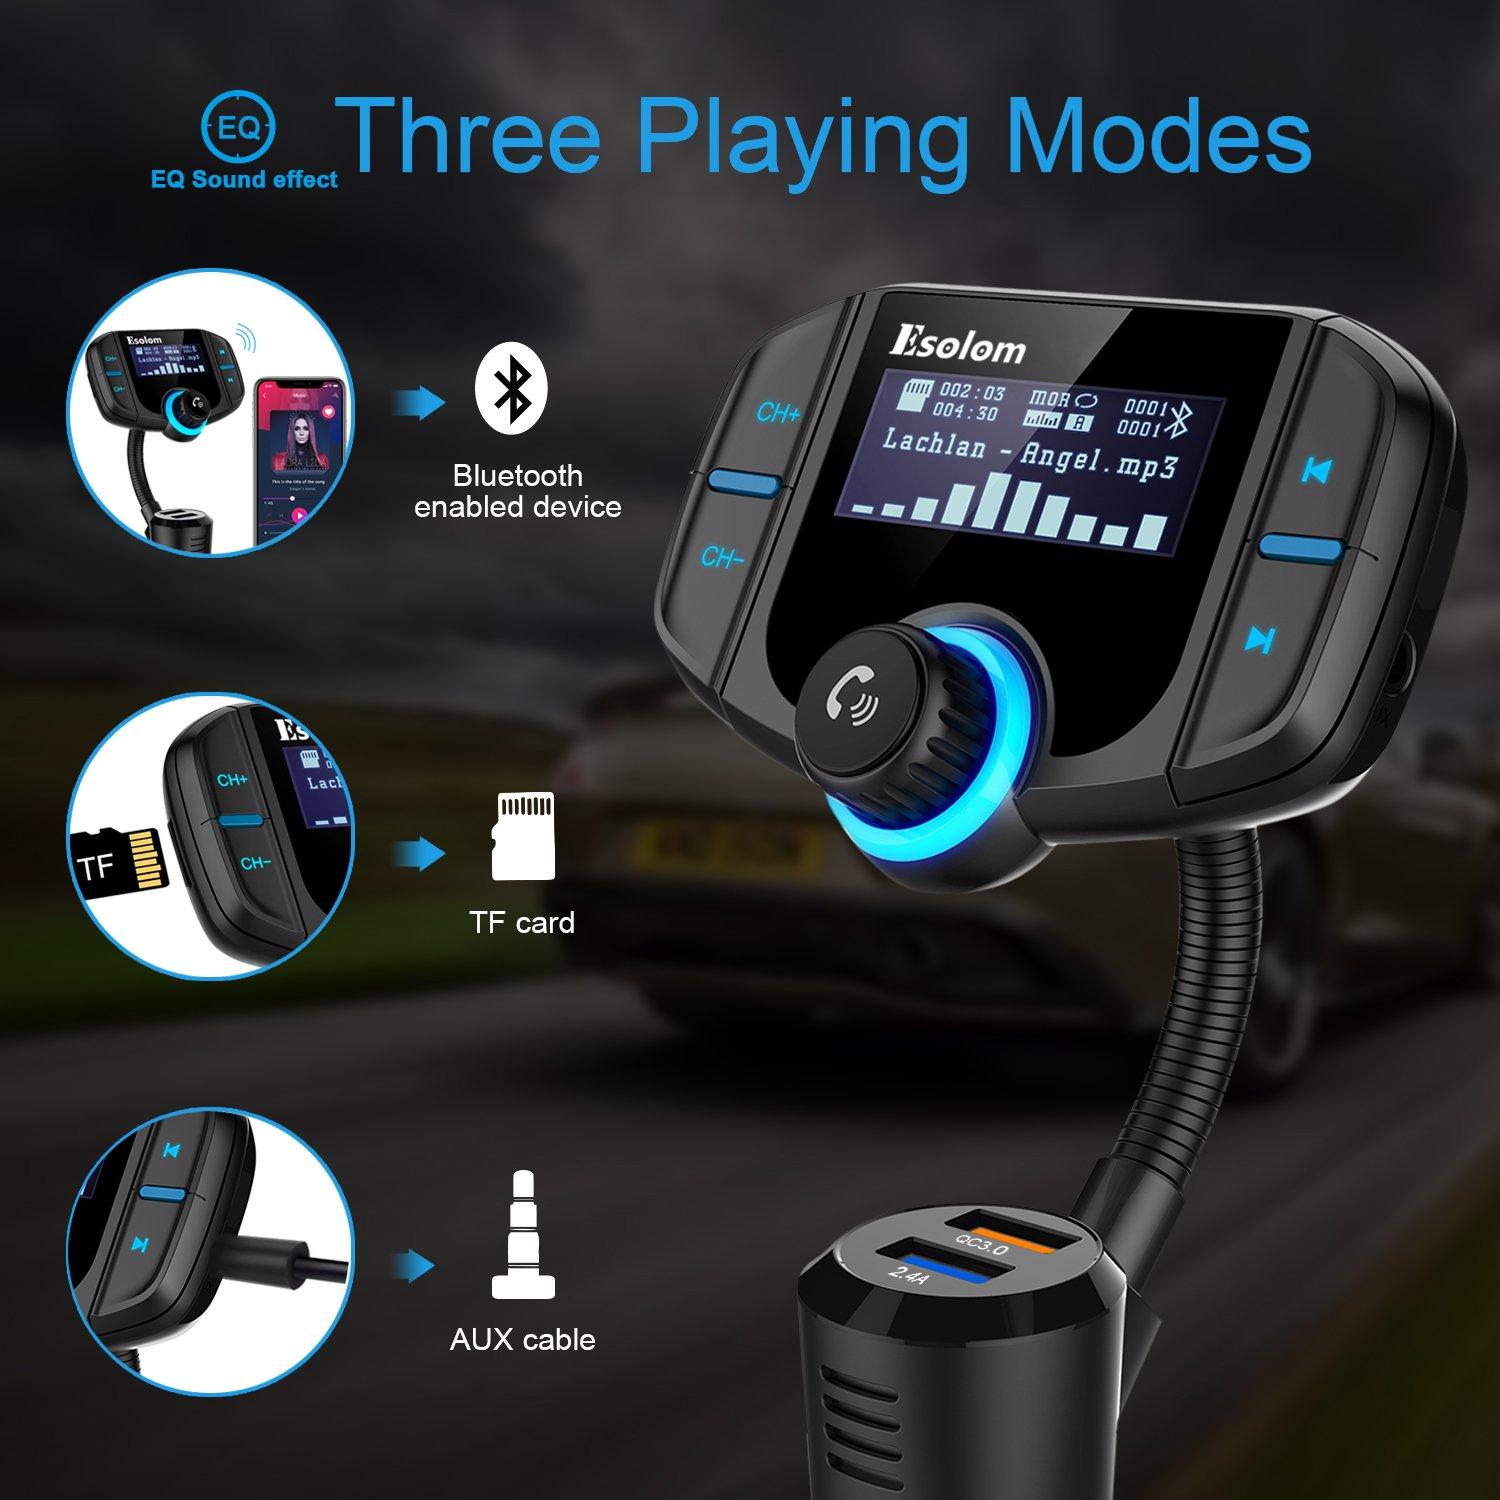 """QC3.0 /& Smart 2.4A Dual USB Ports AUX Input//Output Hands-free Calling Car Kit with 1.7/"""" Display ESOLOM Wireless Car Stereo Radio Adapter Receiver Support TF Card 【Upgraded Version】Bluetooth FM Transmitter"""